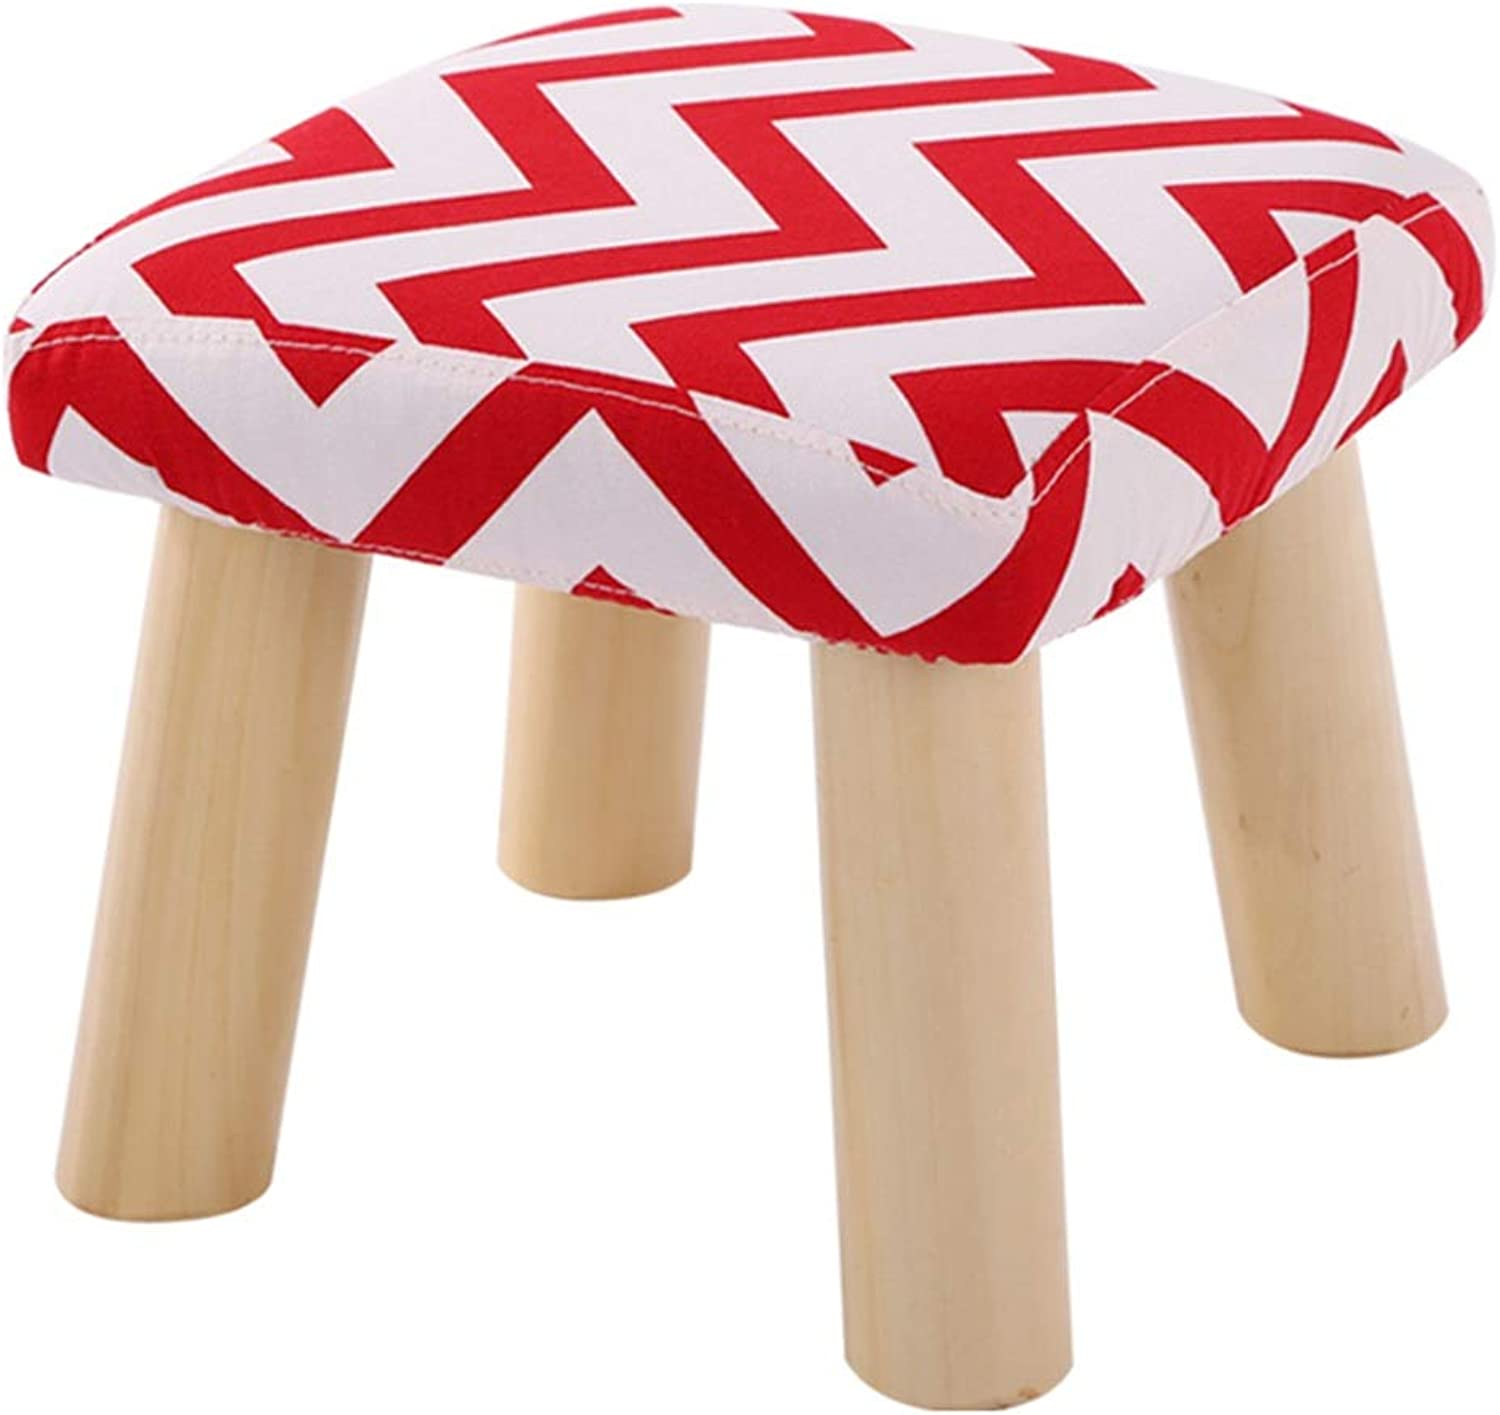 ZHAOYONGLI Stools Footstool Step Stools Solid Wood Stool Cotton Linen Bench Stool Change shoes Bench Removable and Washable Home Small Stool Square Stool Creative Solid Durable Long Lasting